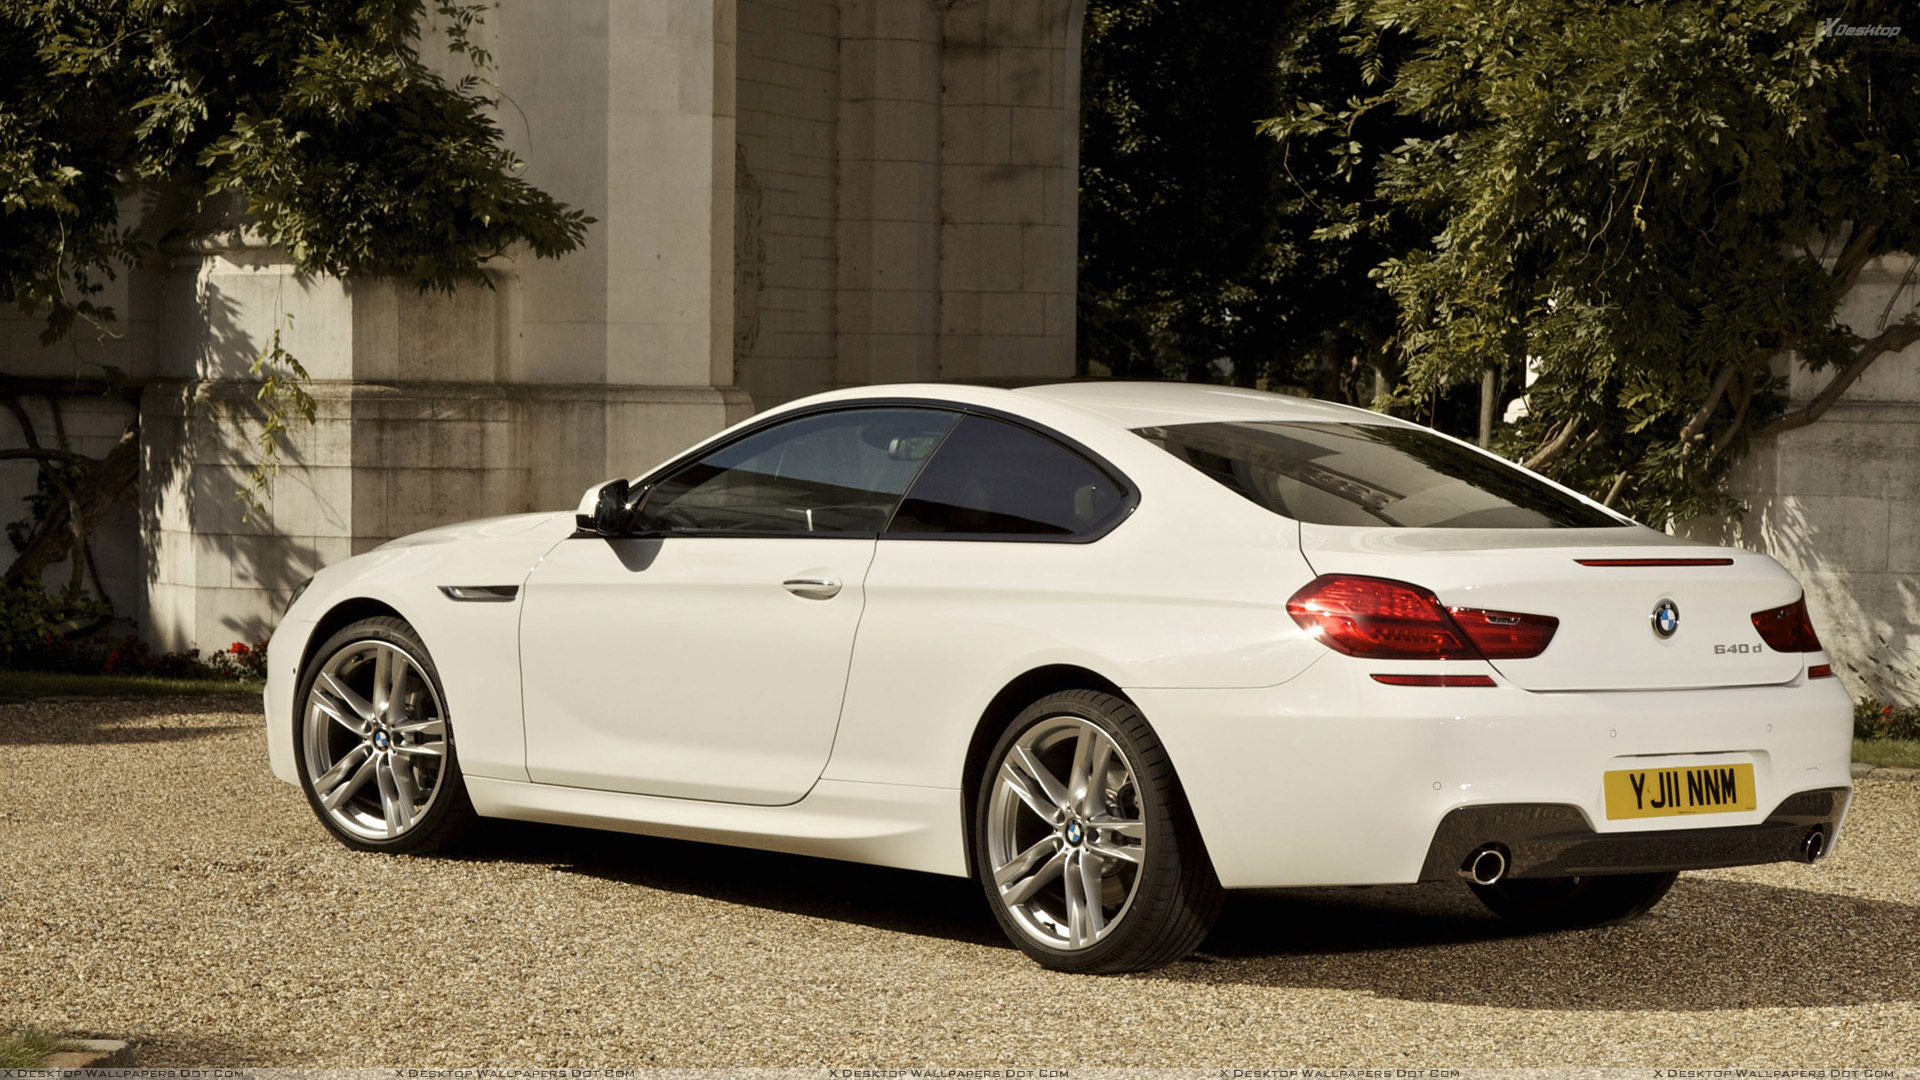 BMW 6 Series Coupe Side Pose In White Wallpaper